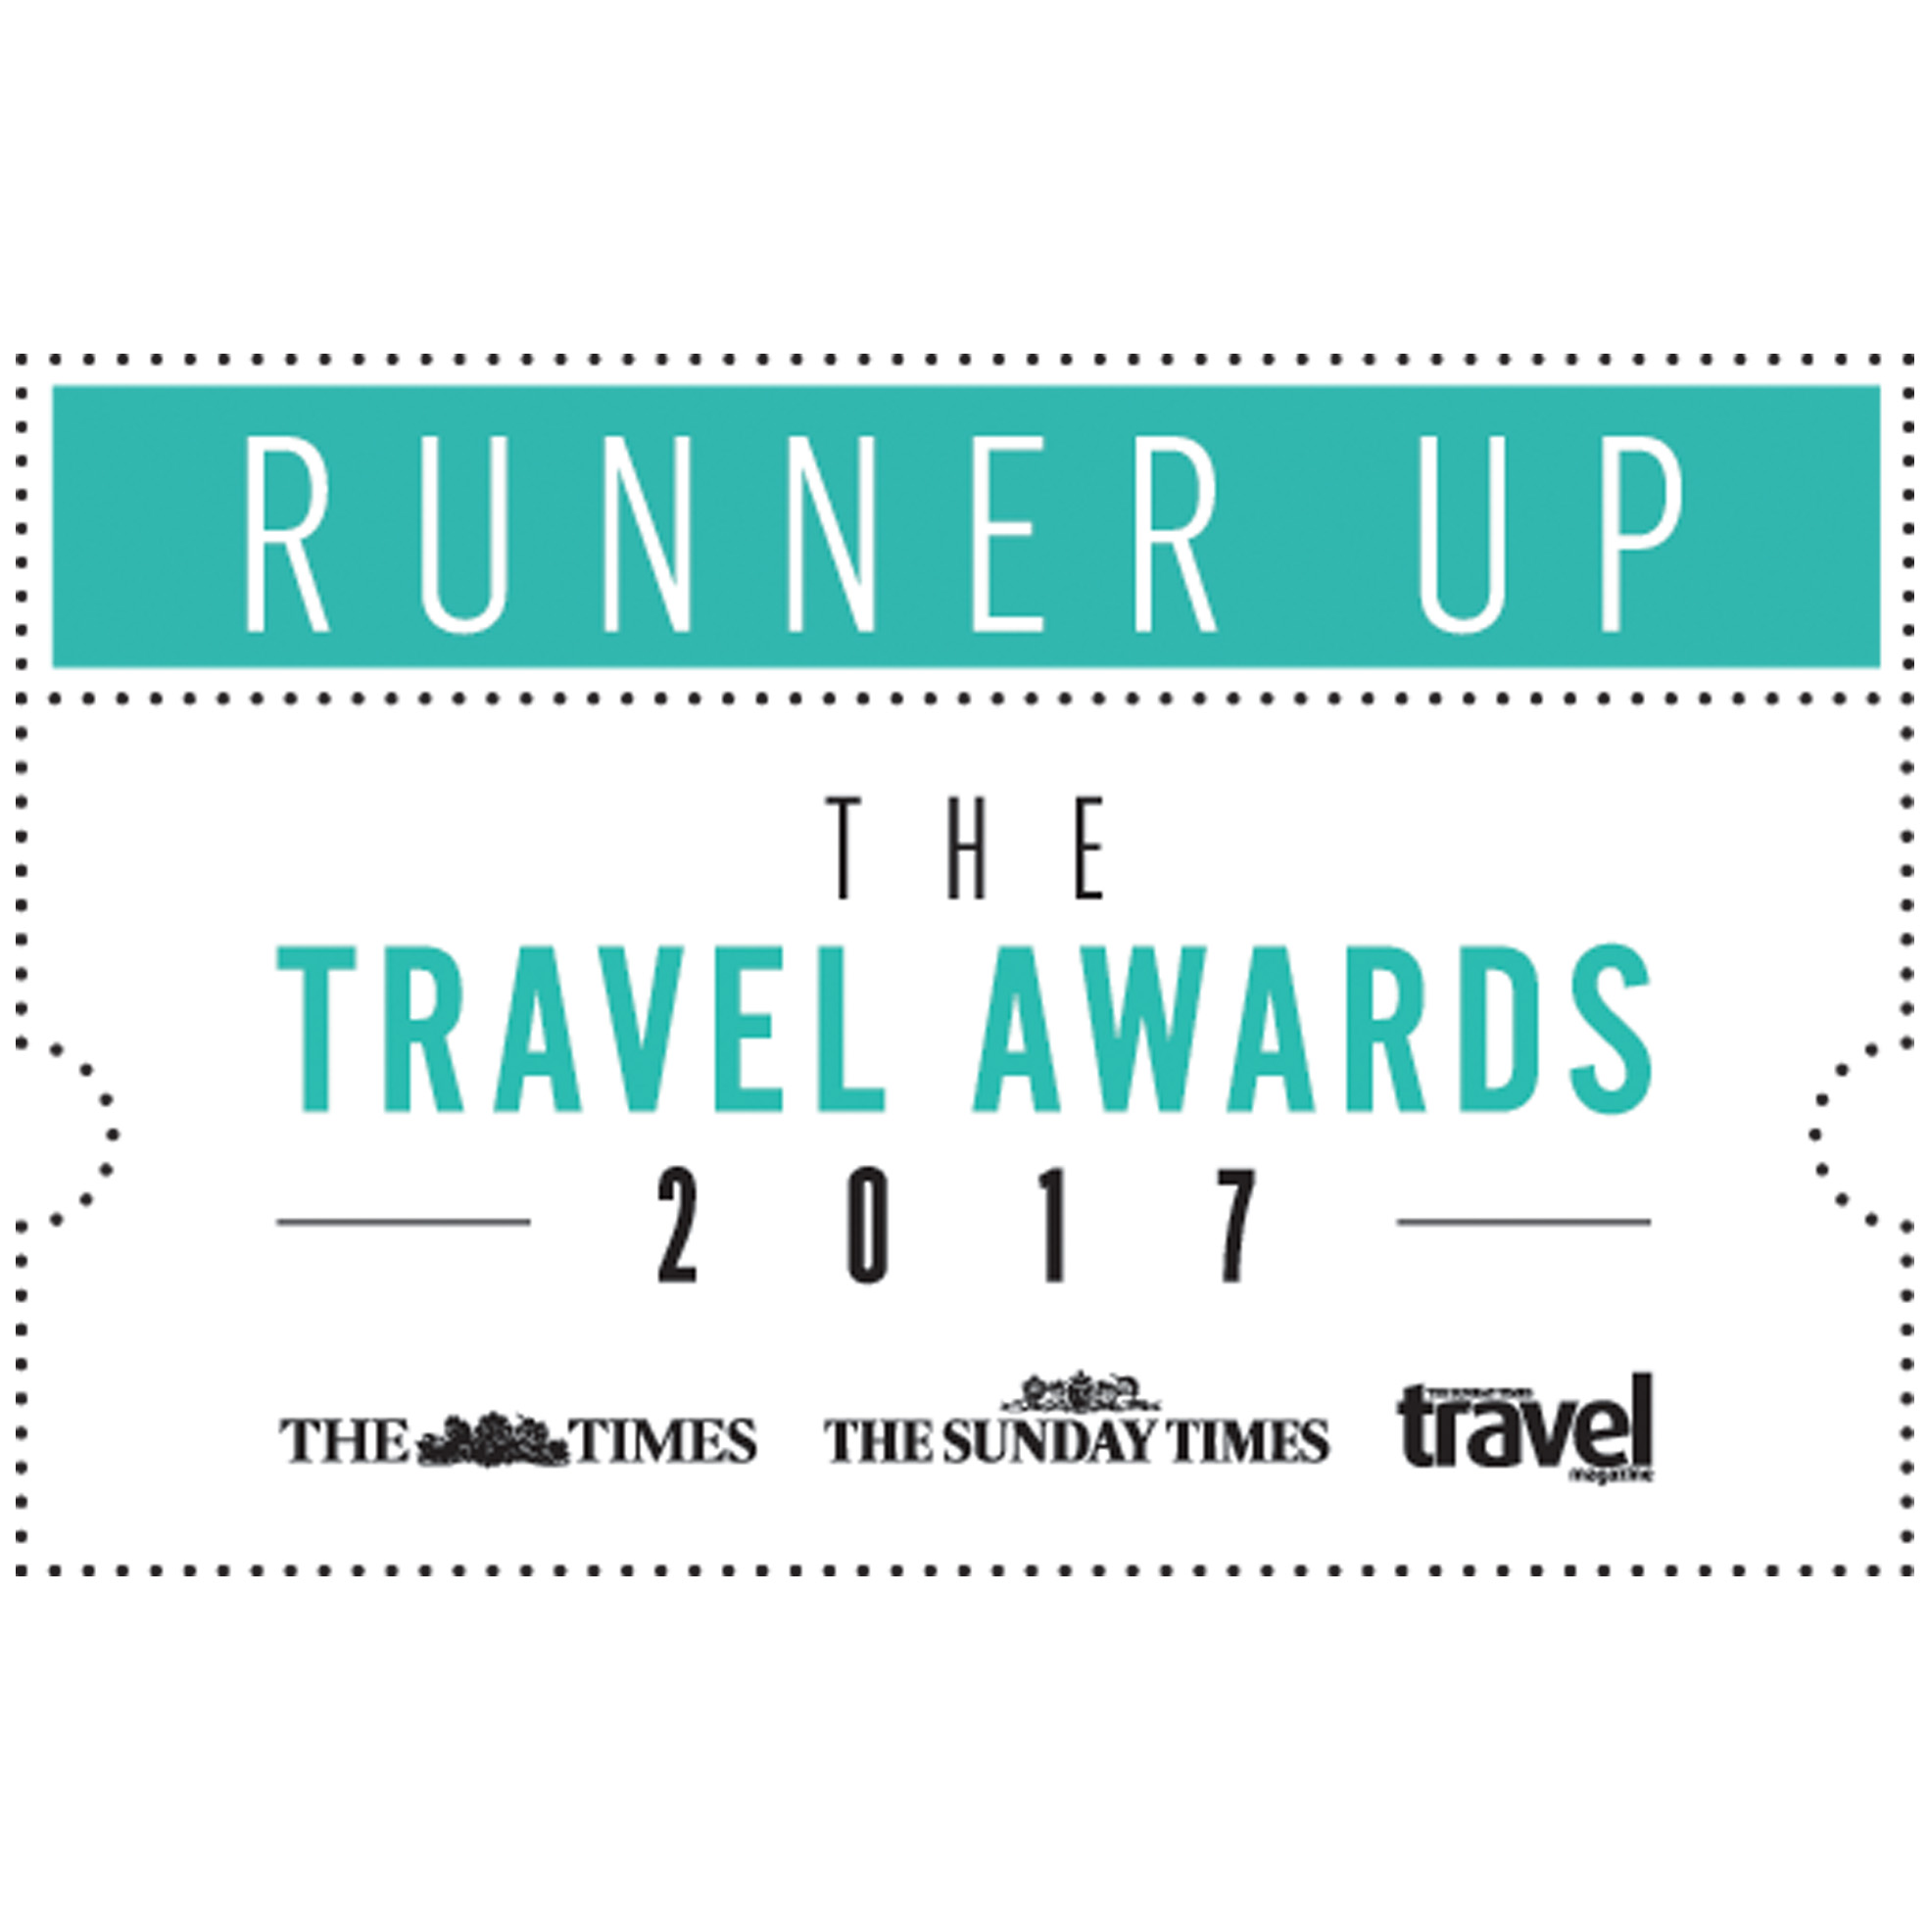 The Times and Sunday Times Travel Awards 2017 - Runner Ups